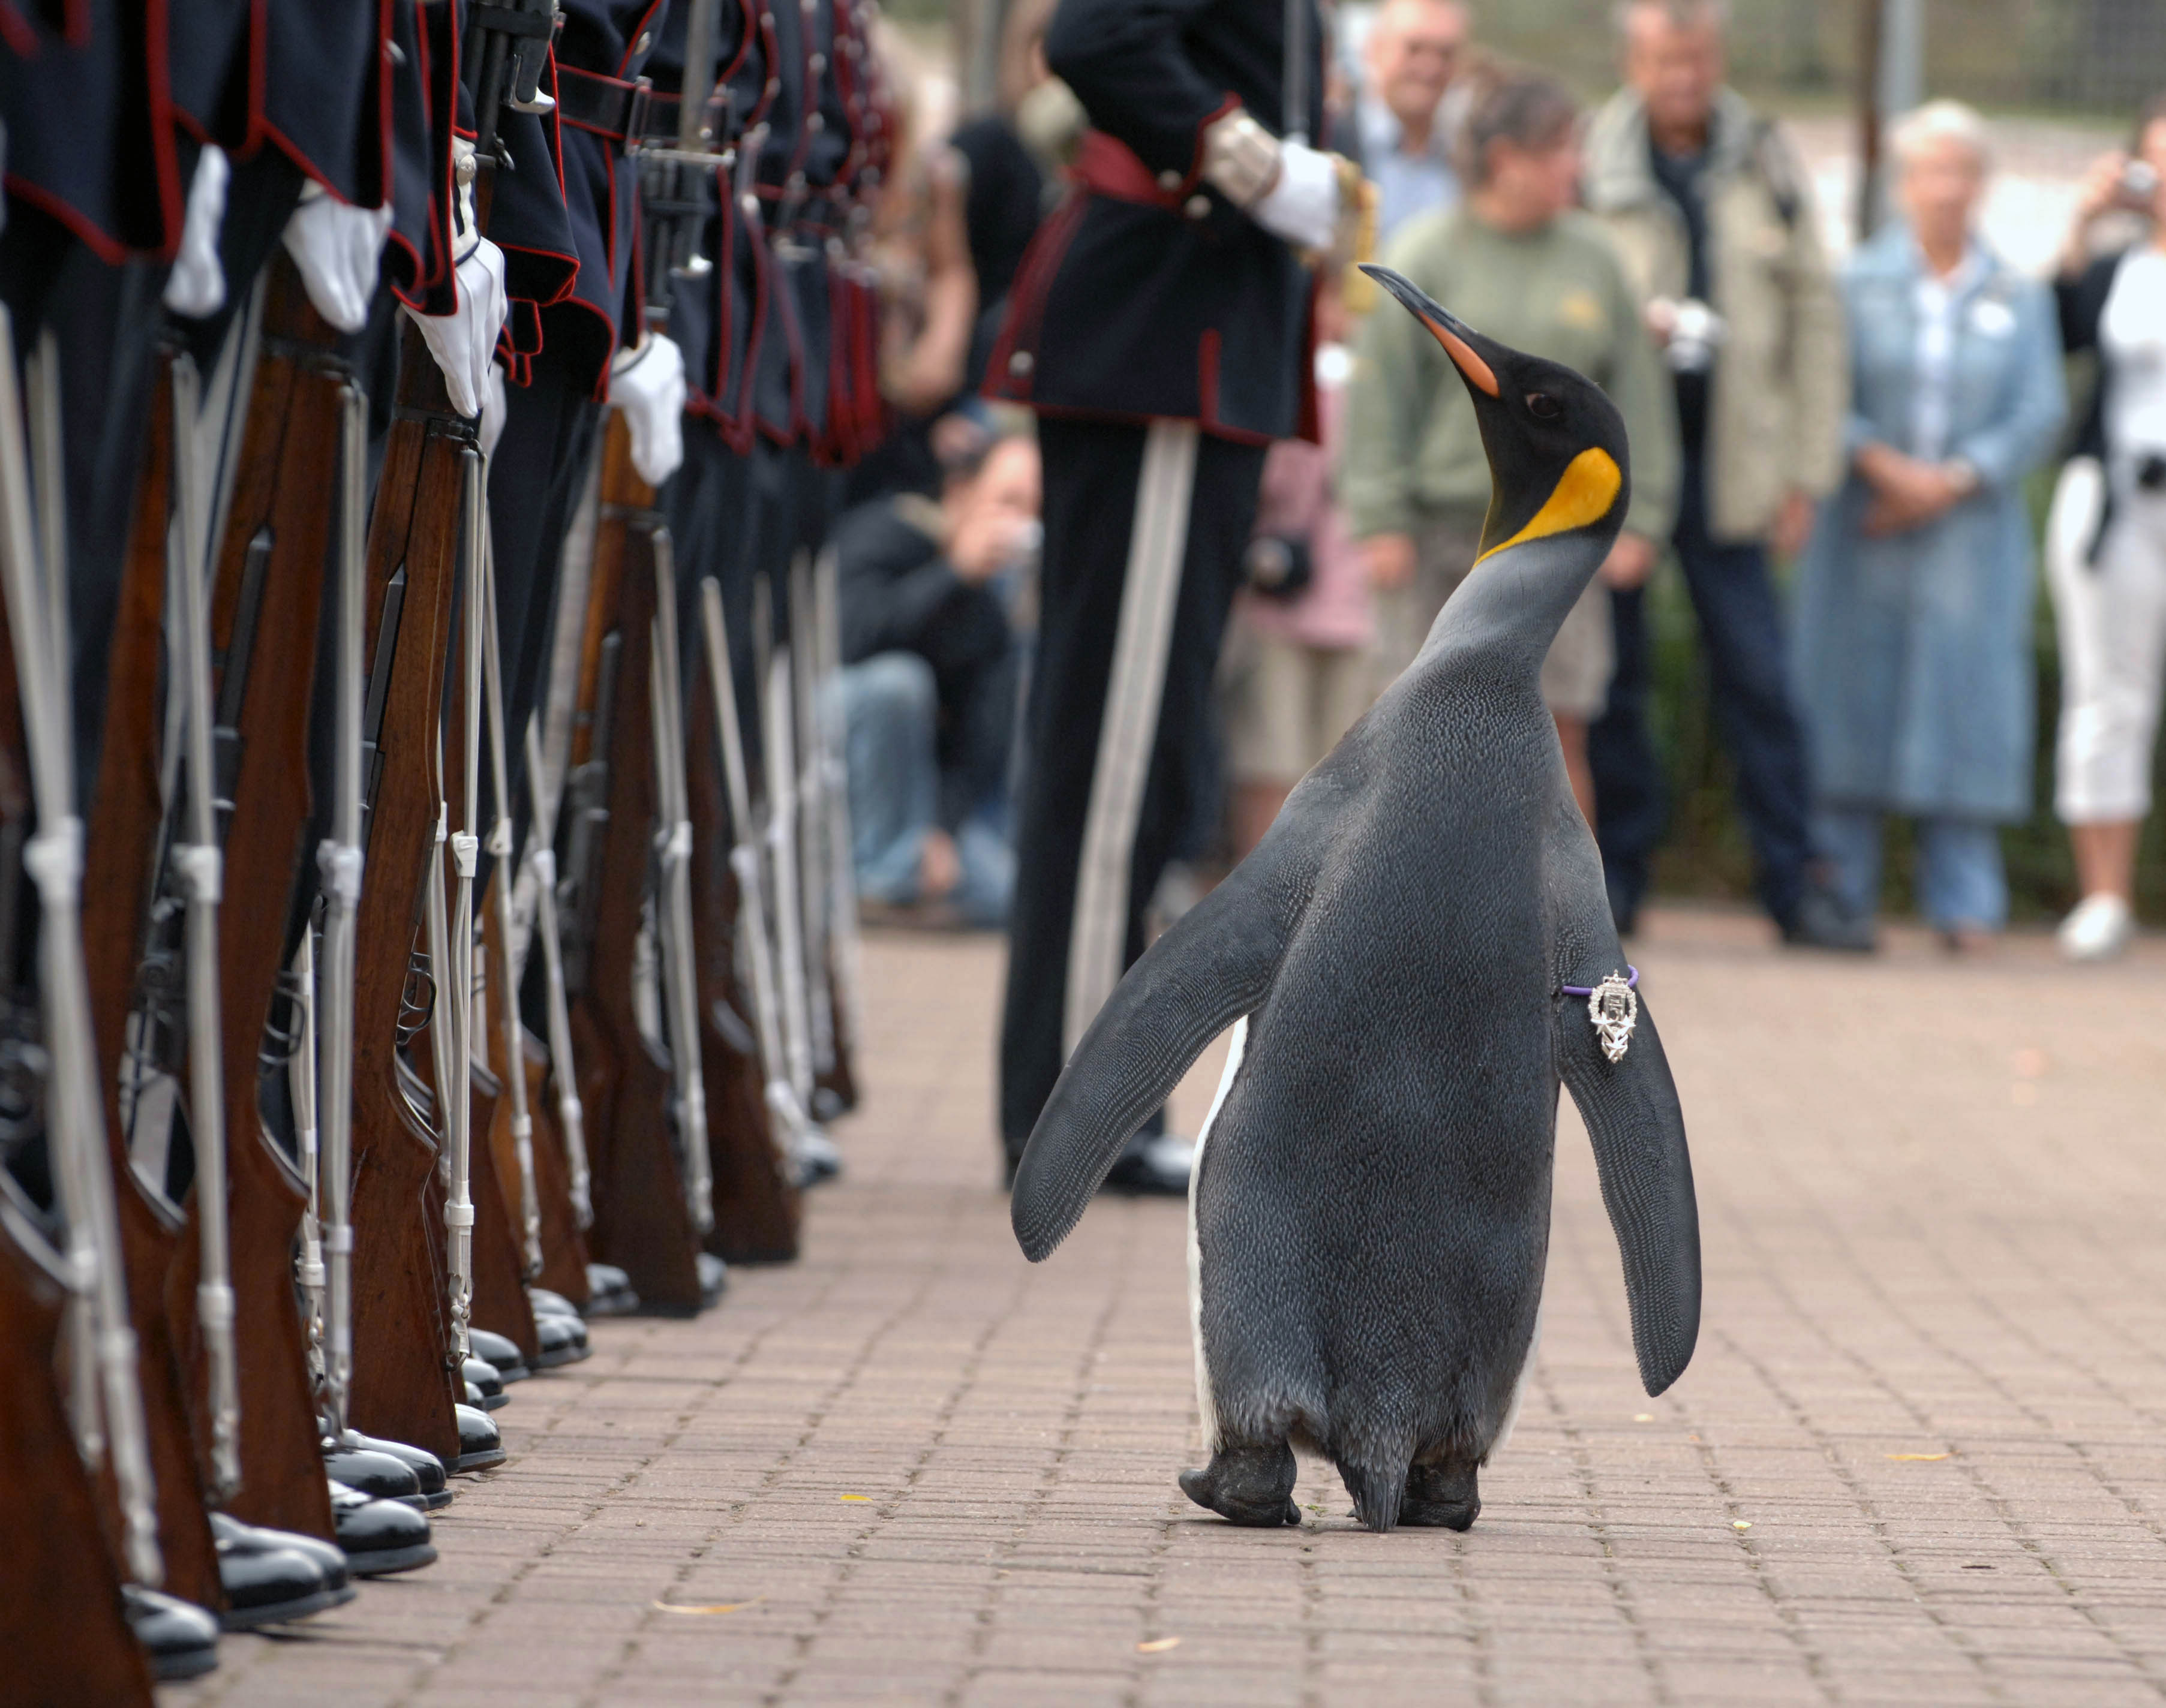 Nils Olav the Penguin inspects the Kings Guard of Norway after being bestowed with a knighthood at Edinburgh Zoo in Scotland. The King's Guard adopted the penguin as their mascot in 1972 during a visit to Edinburgh for the annual Military Tattoo. The tradition has stuck and each time the Guards visit the city, Nils Olav is promoted and invited to inspect the troops once more.